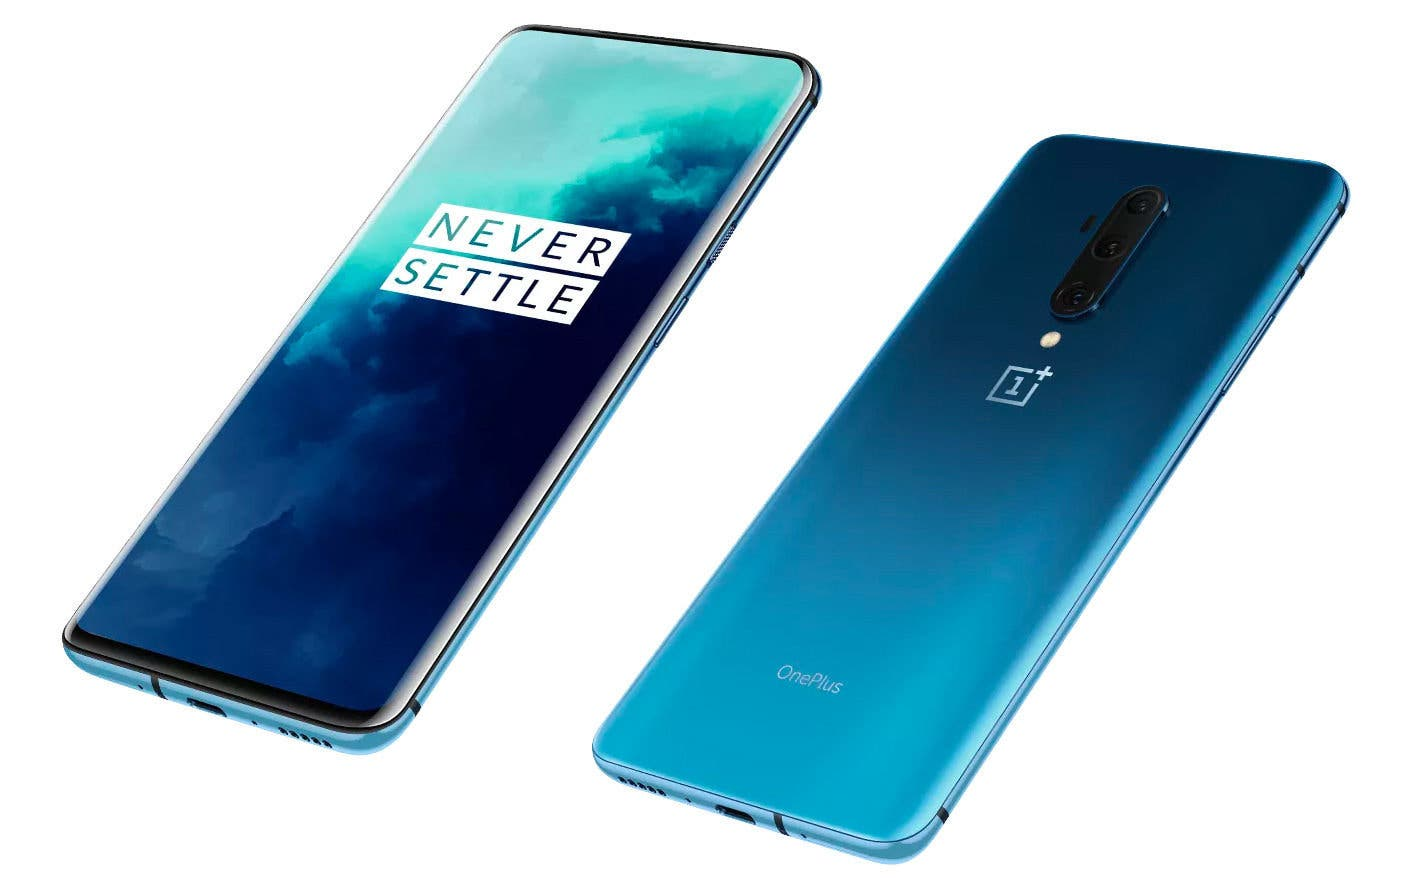 OnePlus 8 Pro To Launch With 120Hz Refresh Rate Display